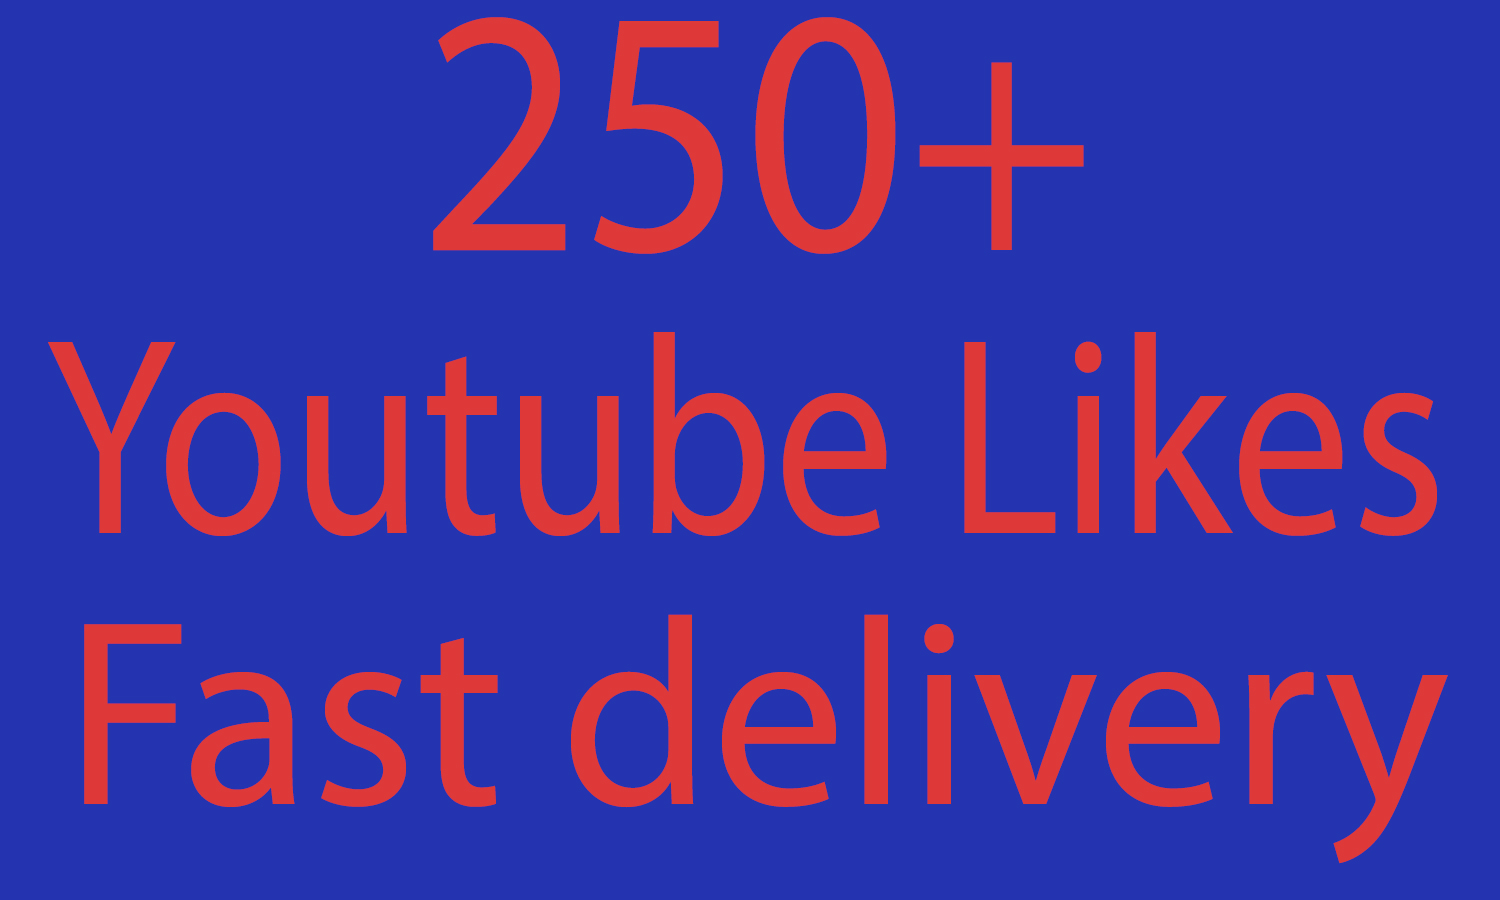 250+ youtube liks fast delivery